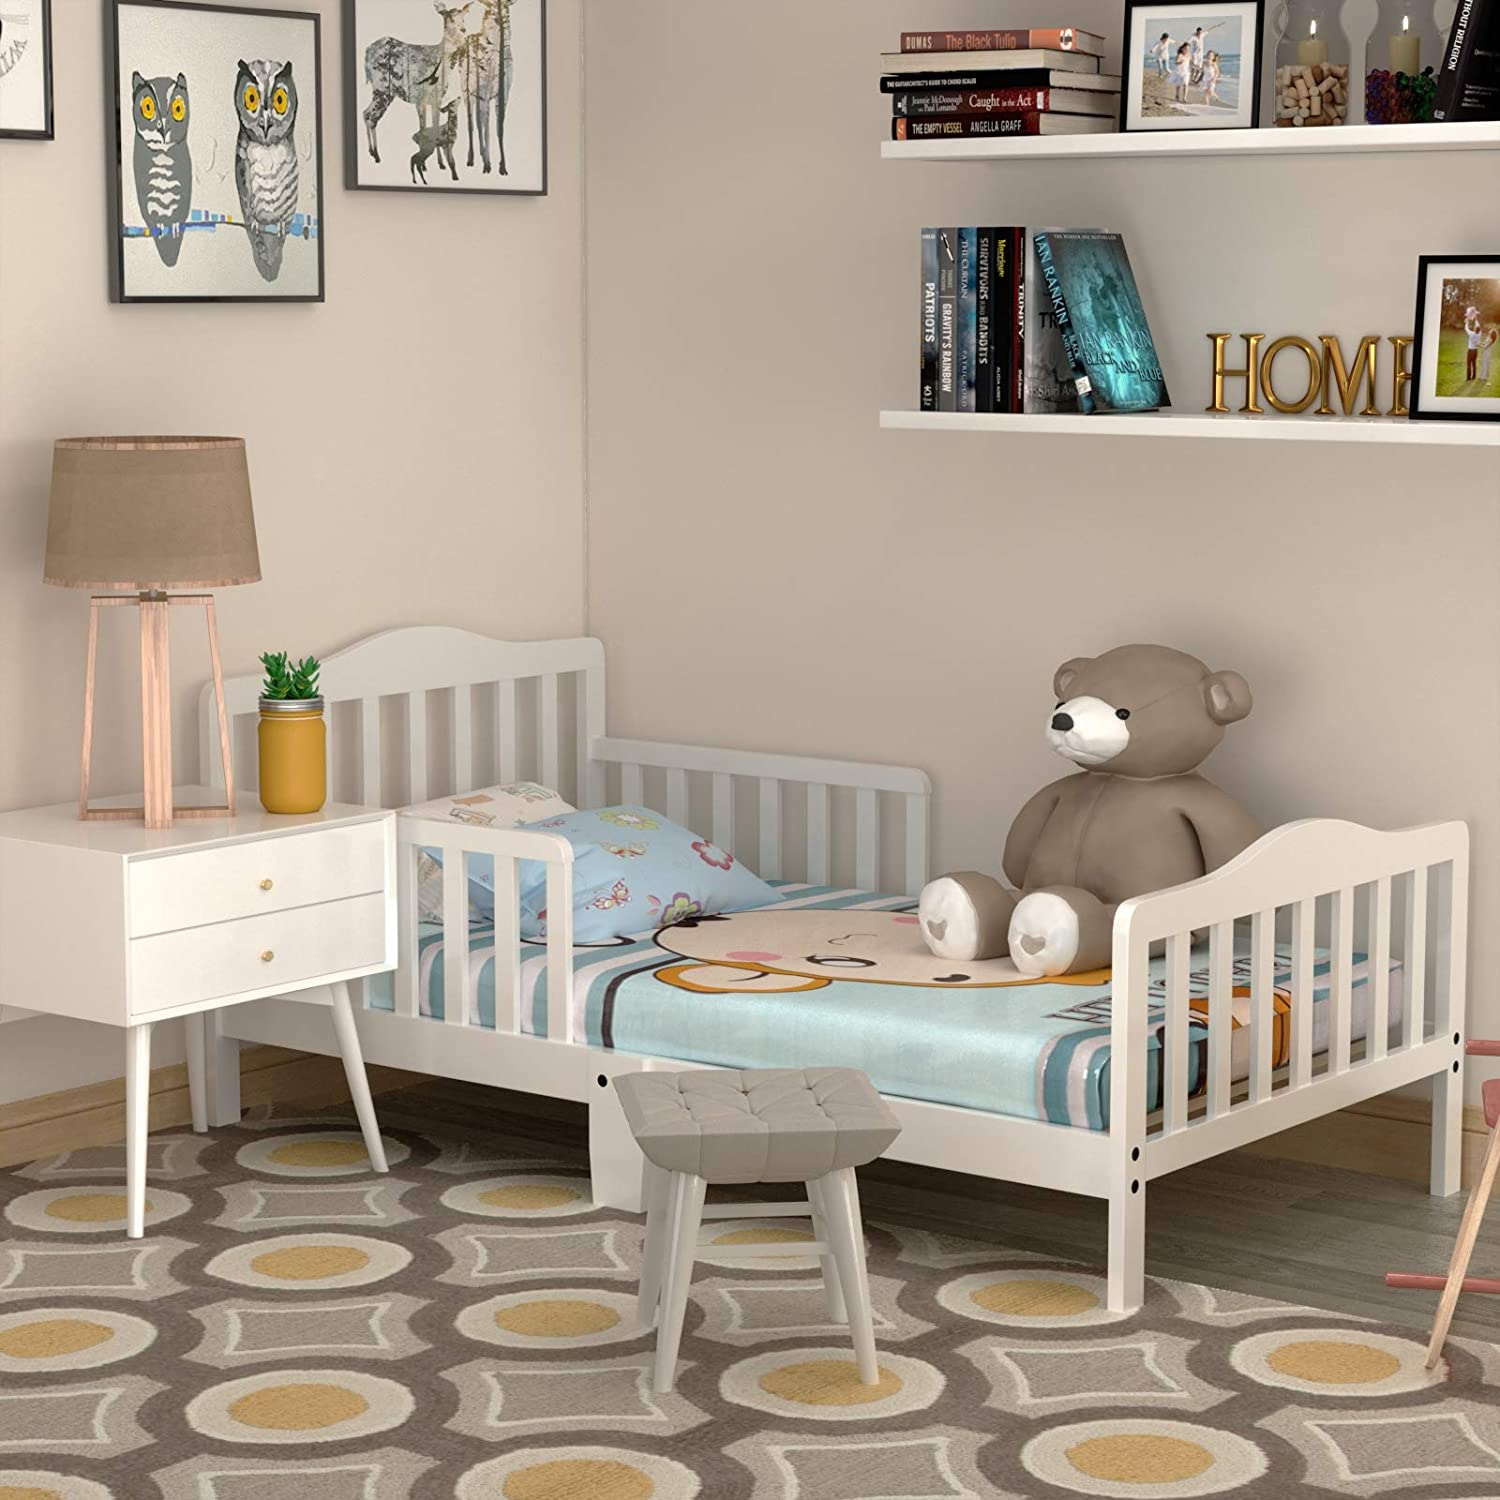 HONEY JOY Toddler Bed Frame, Solid Rubber Wood Frame w/Safety Guardrail, Fits Crib Full Size Mattress (Not Included), Children Classic Sleeping Bedroom Furniture for Kids Boys Girls (White)